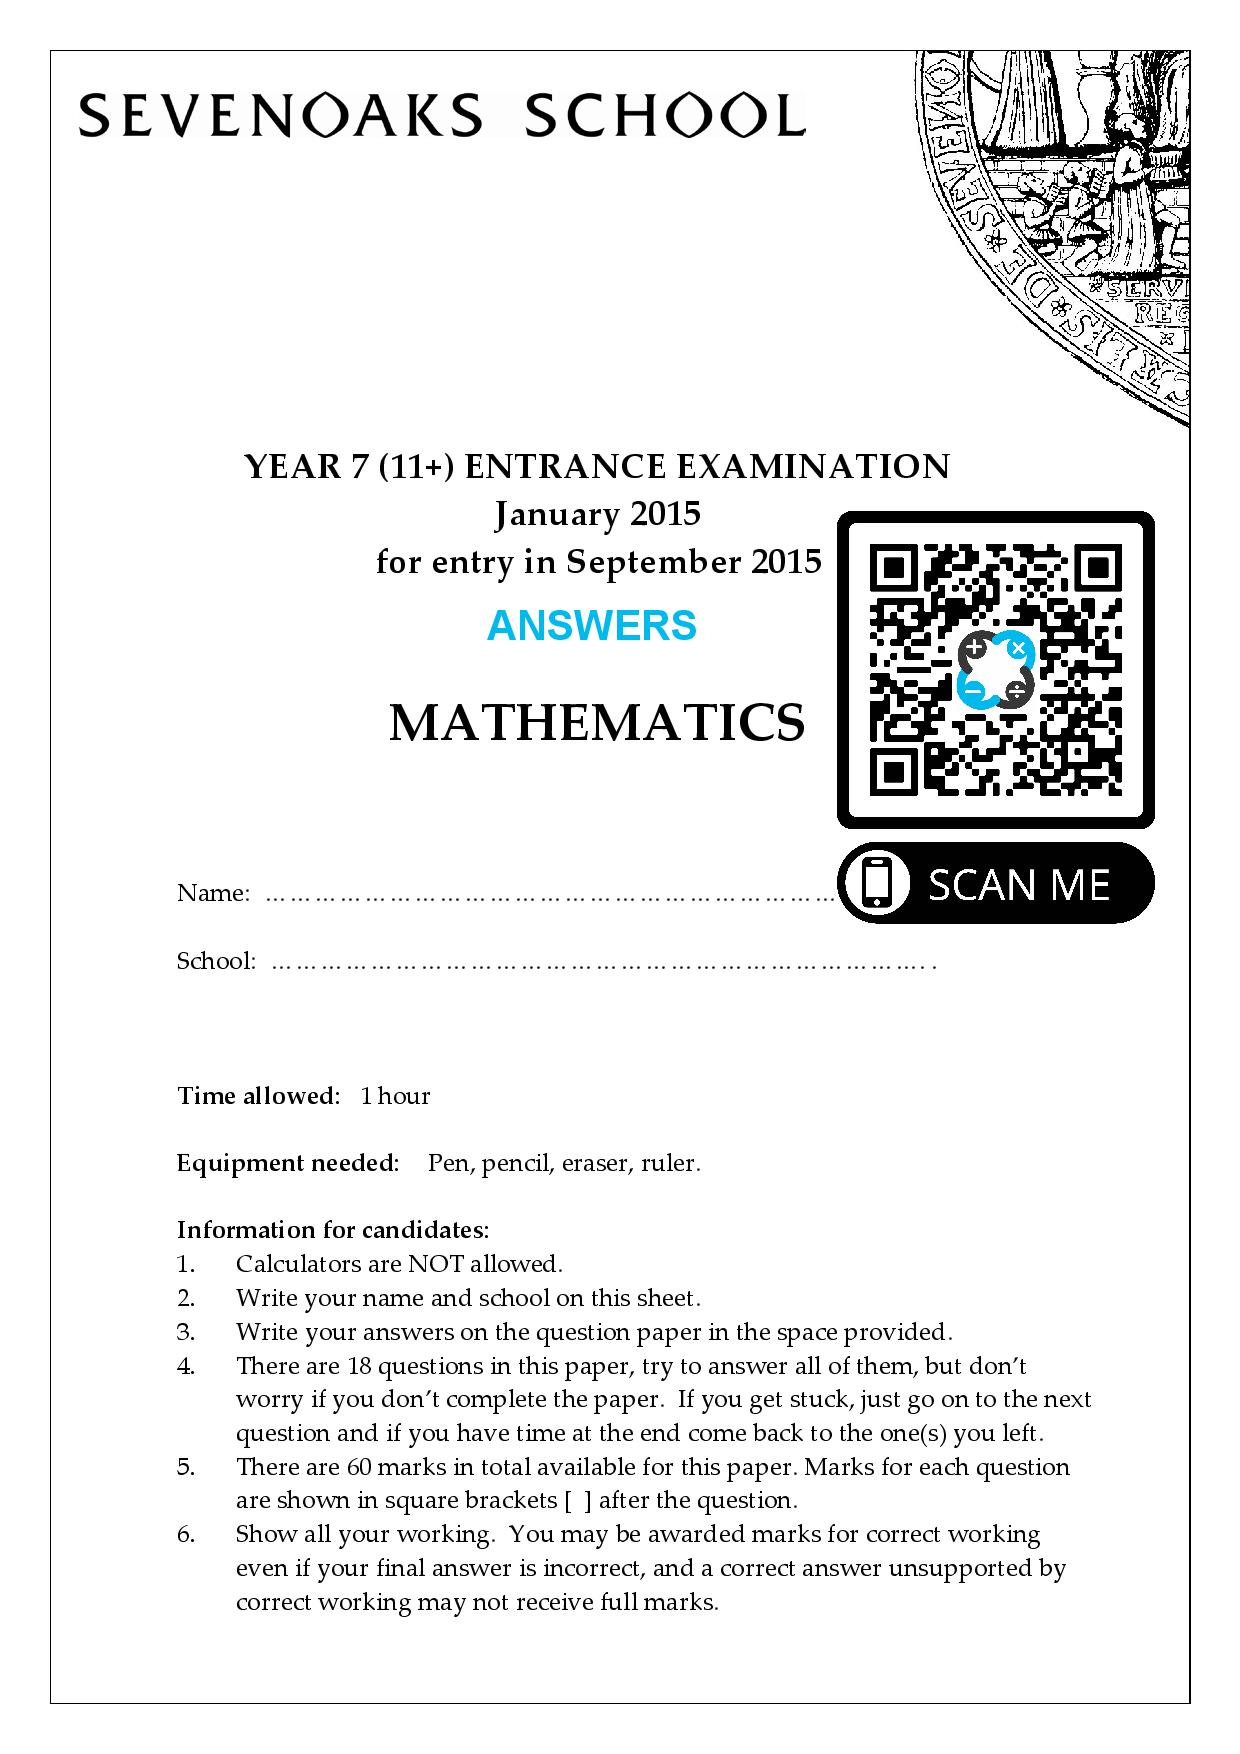 Sevenoaks School YEAR 7 11 ENTRANCE EXAMINATION January 2015 for entry in September 2015 MATHEMATICS Answer Paper page 001